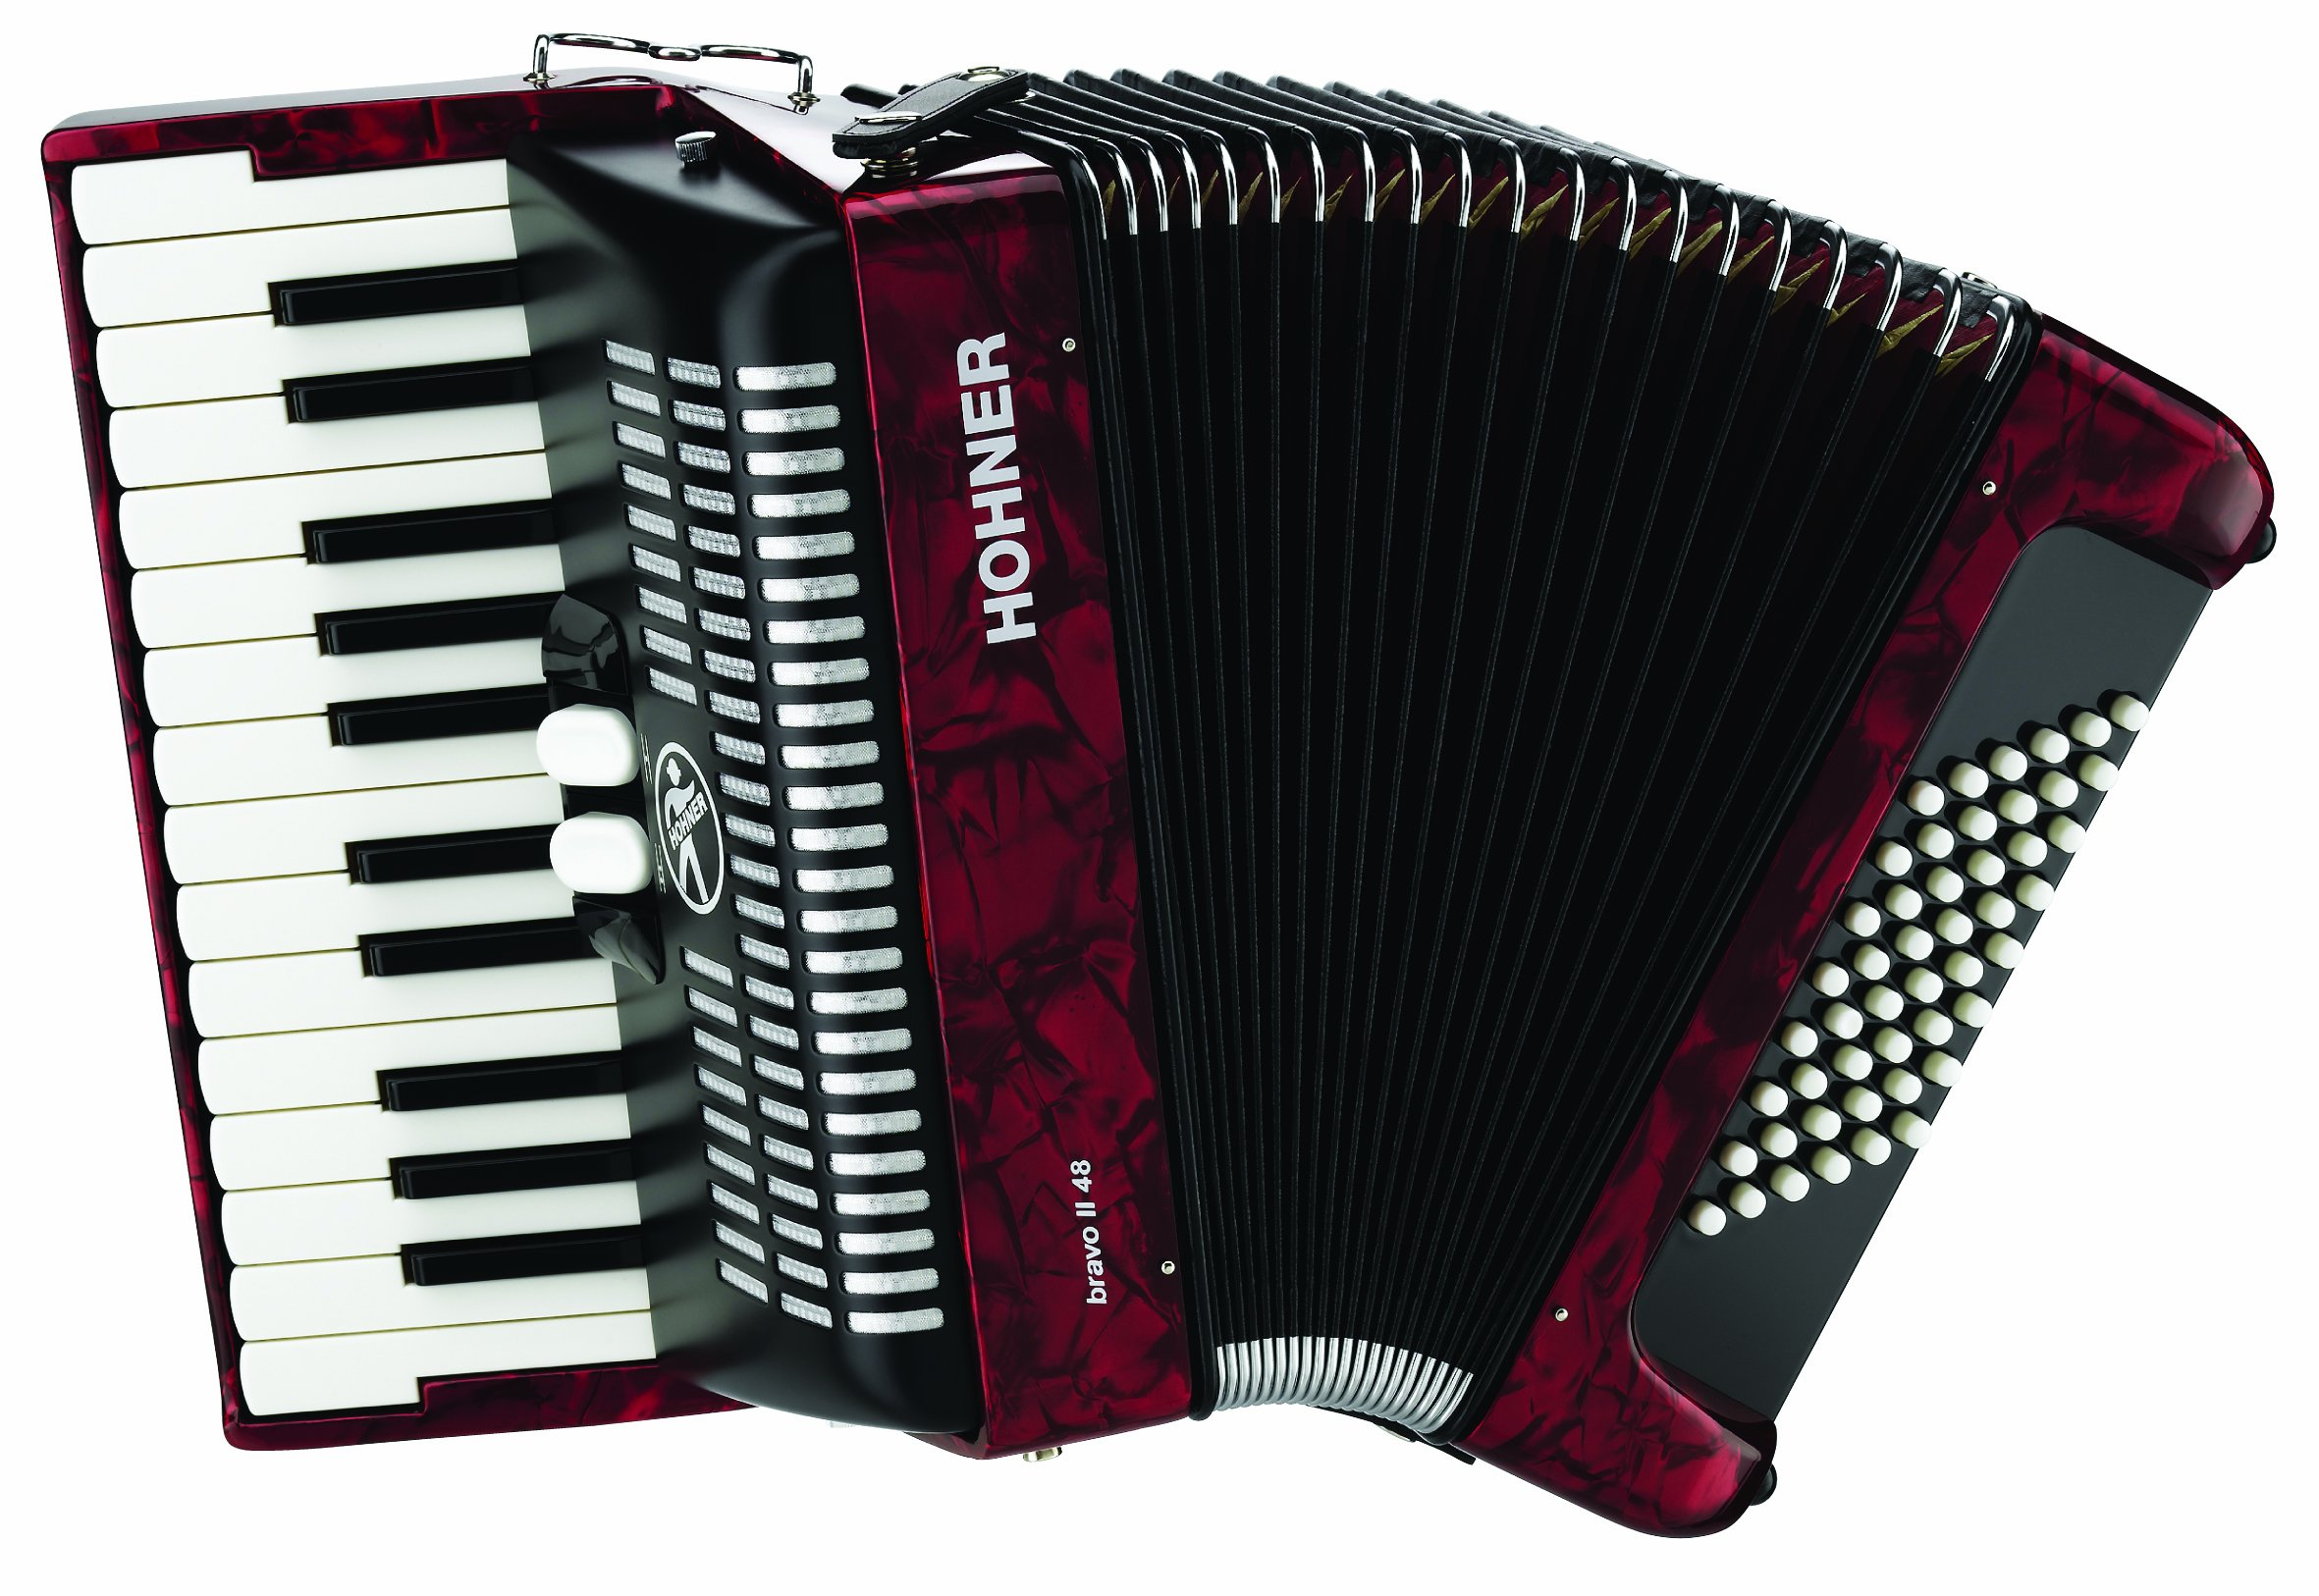 Hohner Accordions BR48R-N 26-Key Piano Accordion, 48 Bass, Red by Hohner Accordions